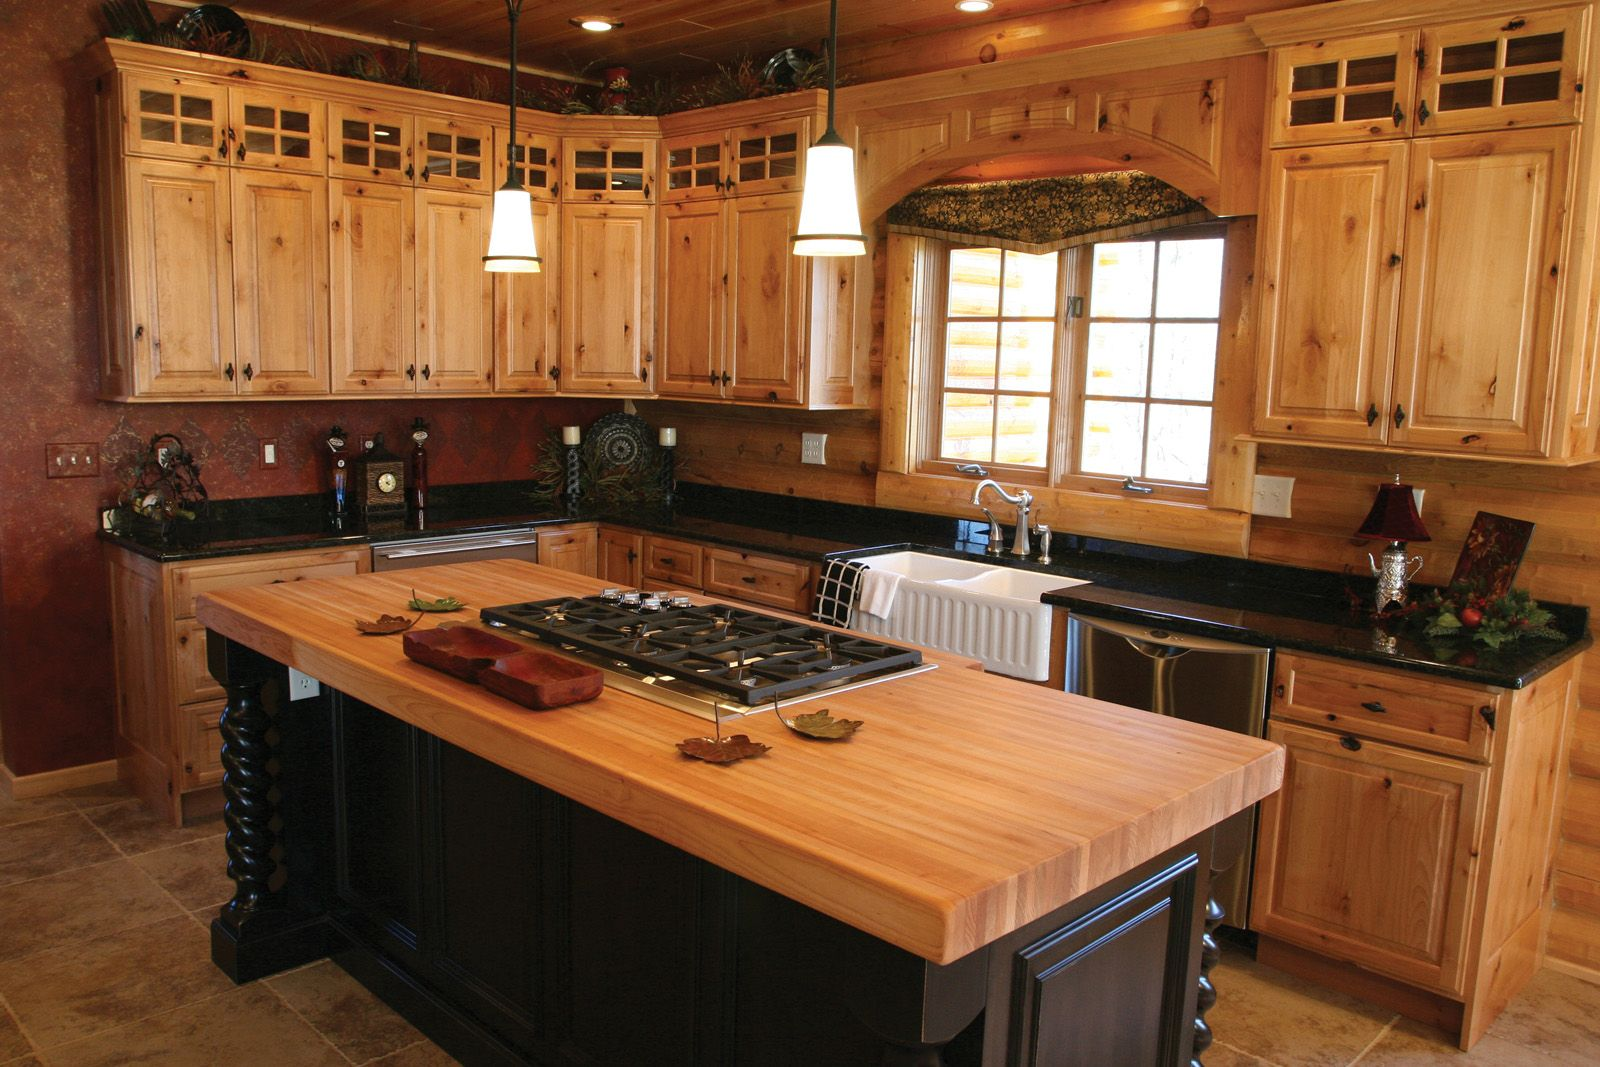 Kitchen Pine Cabinets Original Rustic Style Kitchens Designs Ideas Throughout The Incredible Painting Knotty Contemporary